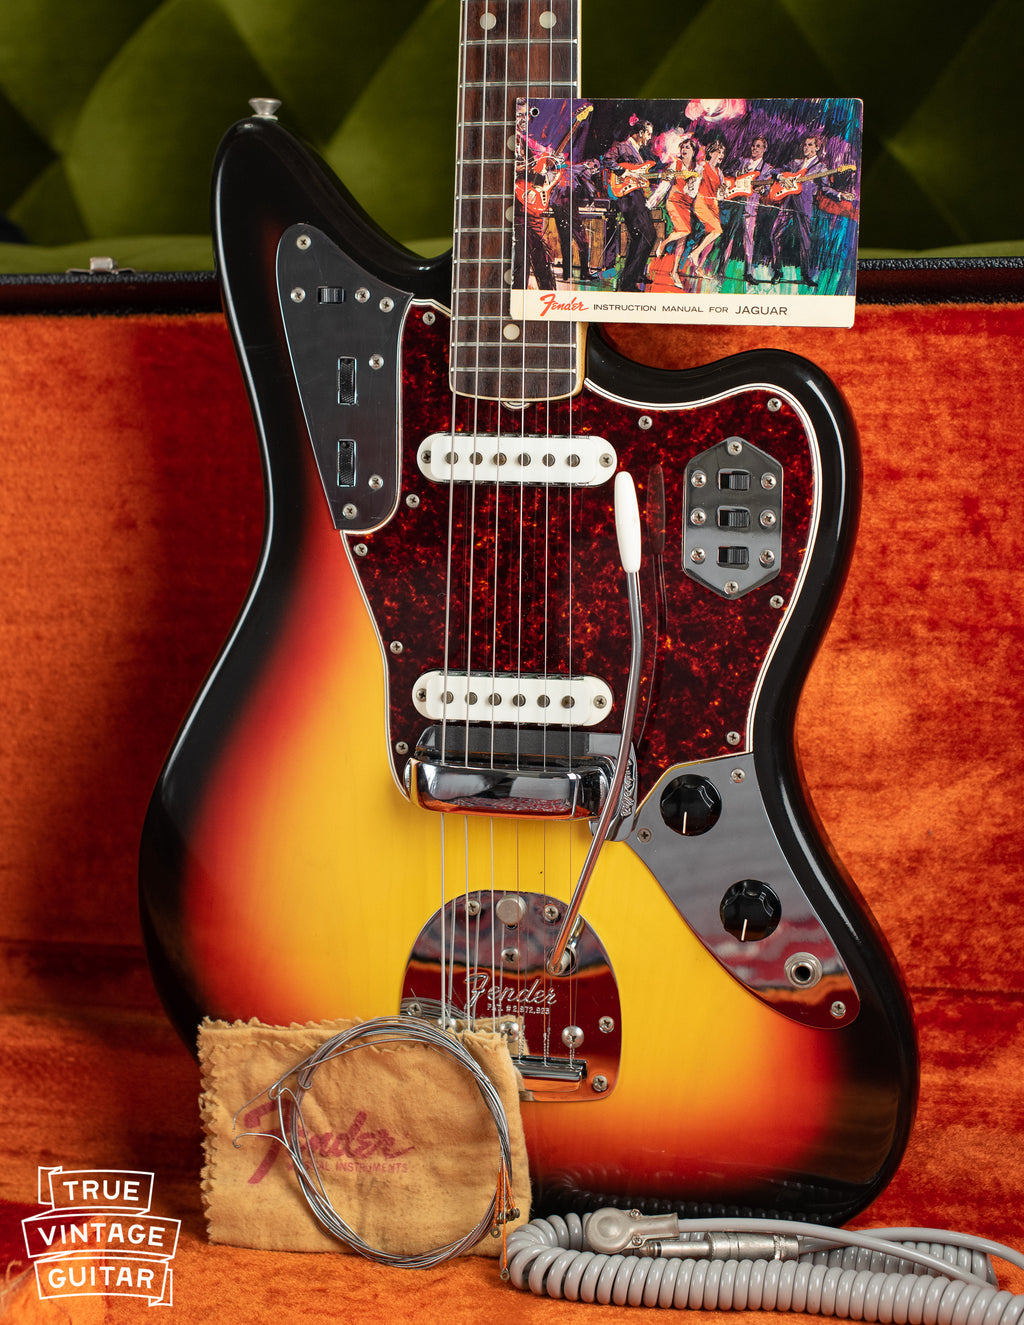 Vintage 1966 Fender Jaguar electric guitar, Sunburst finish, with hang tag and polish cloth